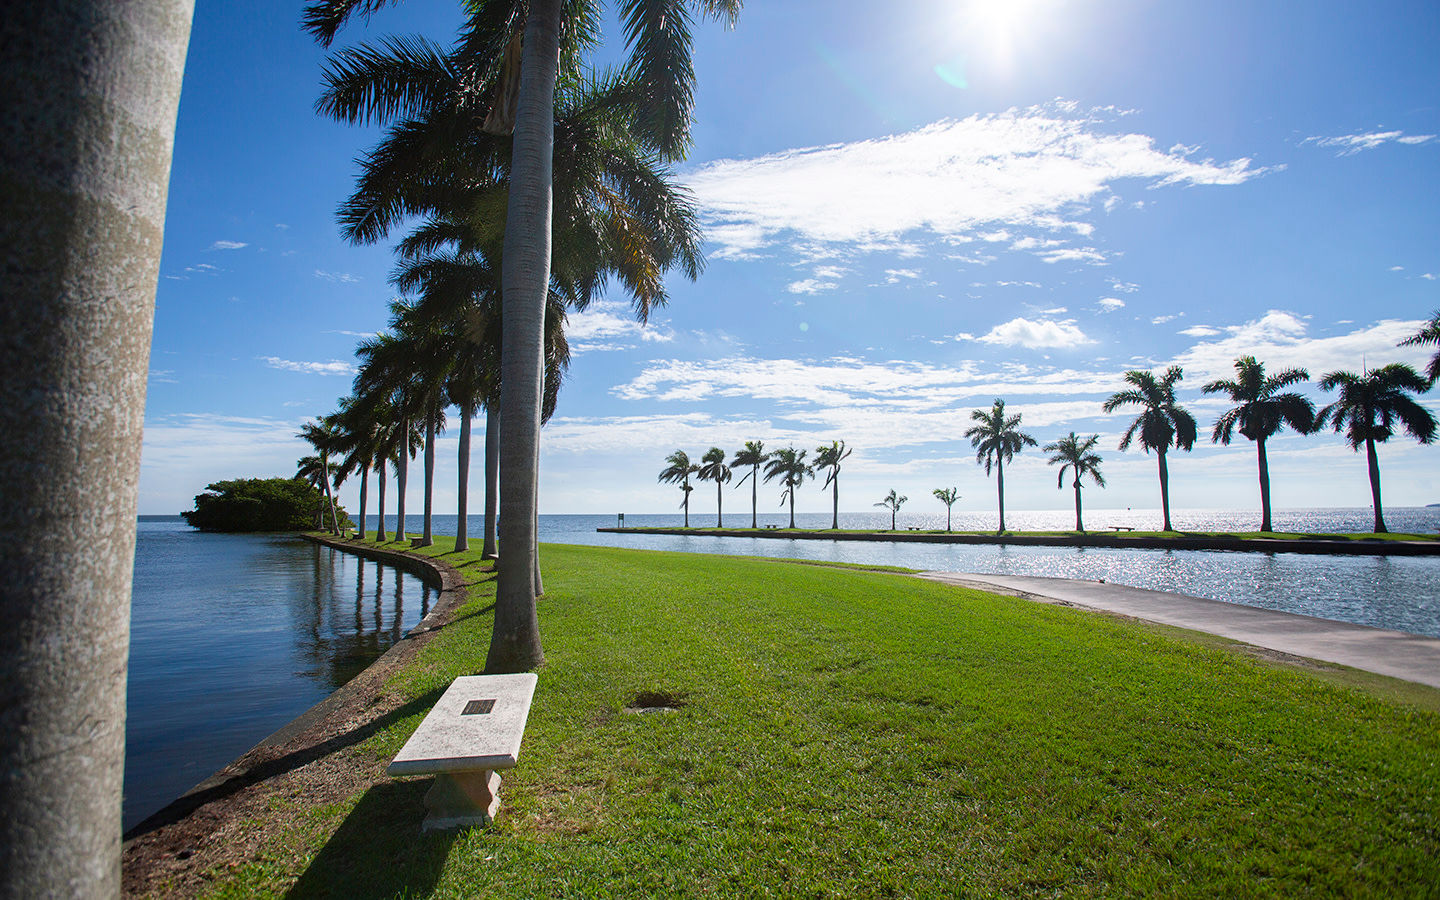 Palm Trees and water views from Charles Deering Estate